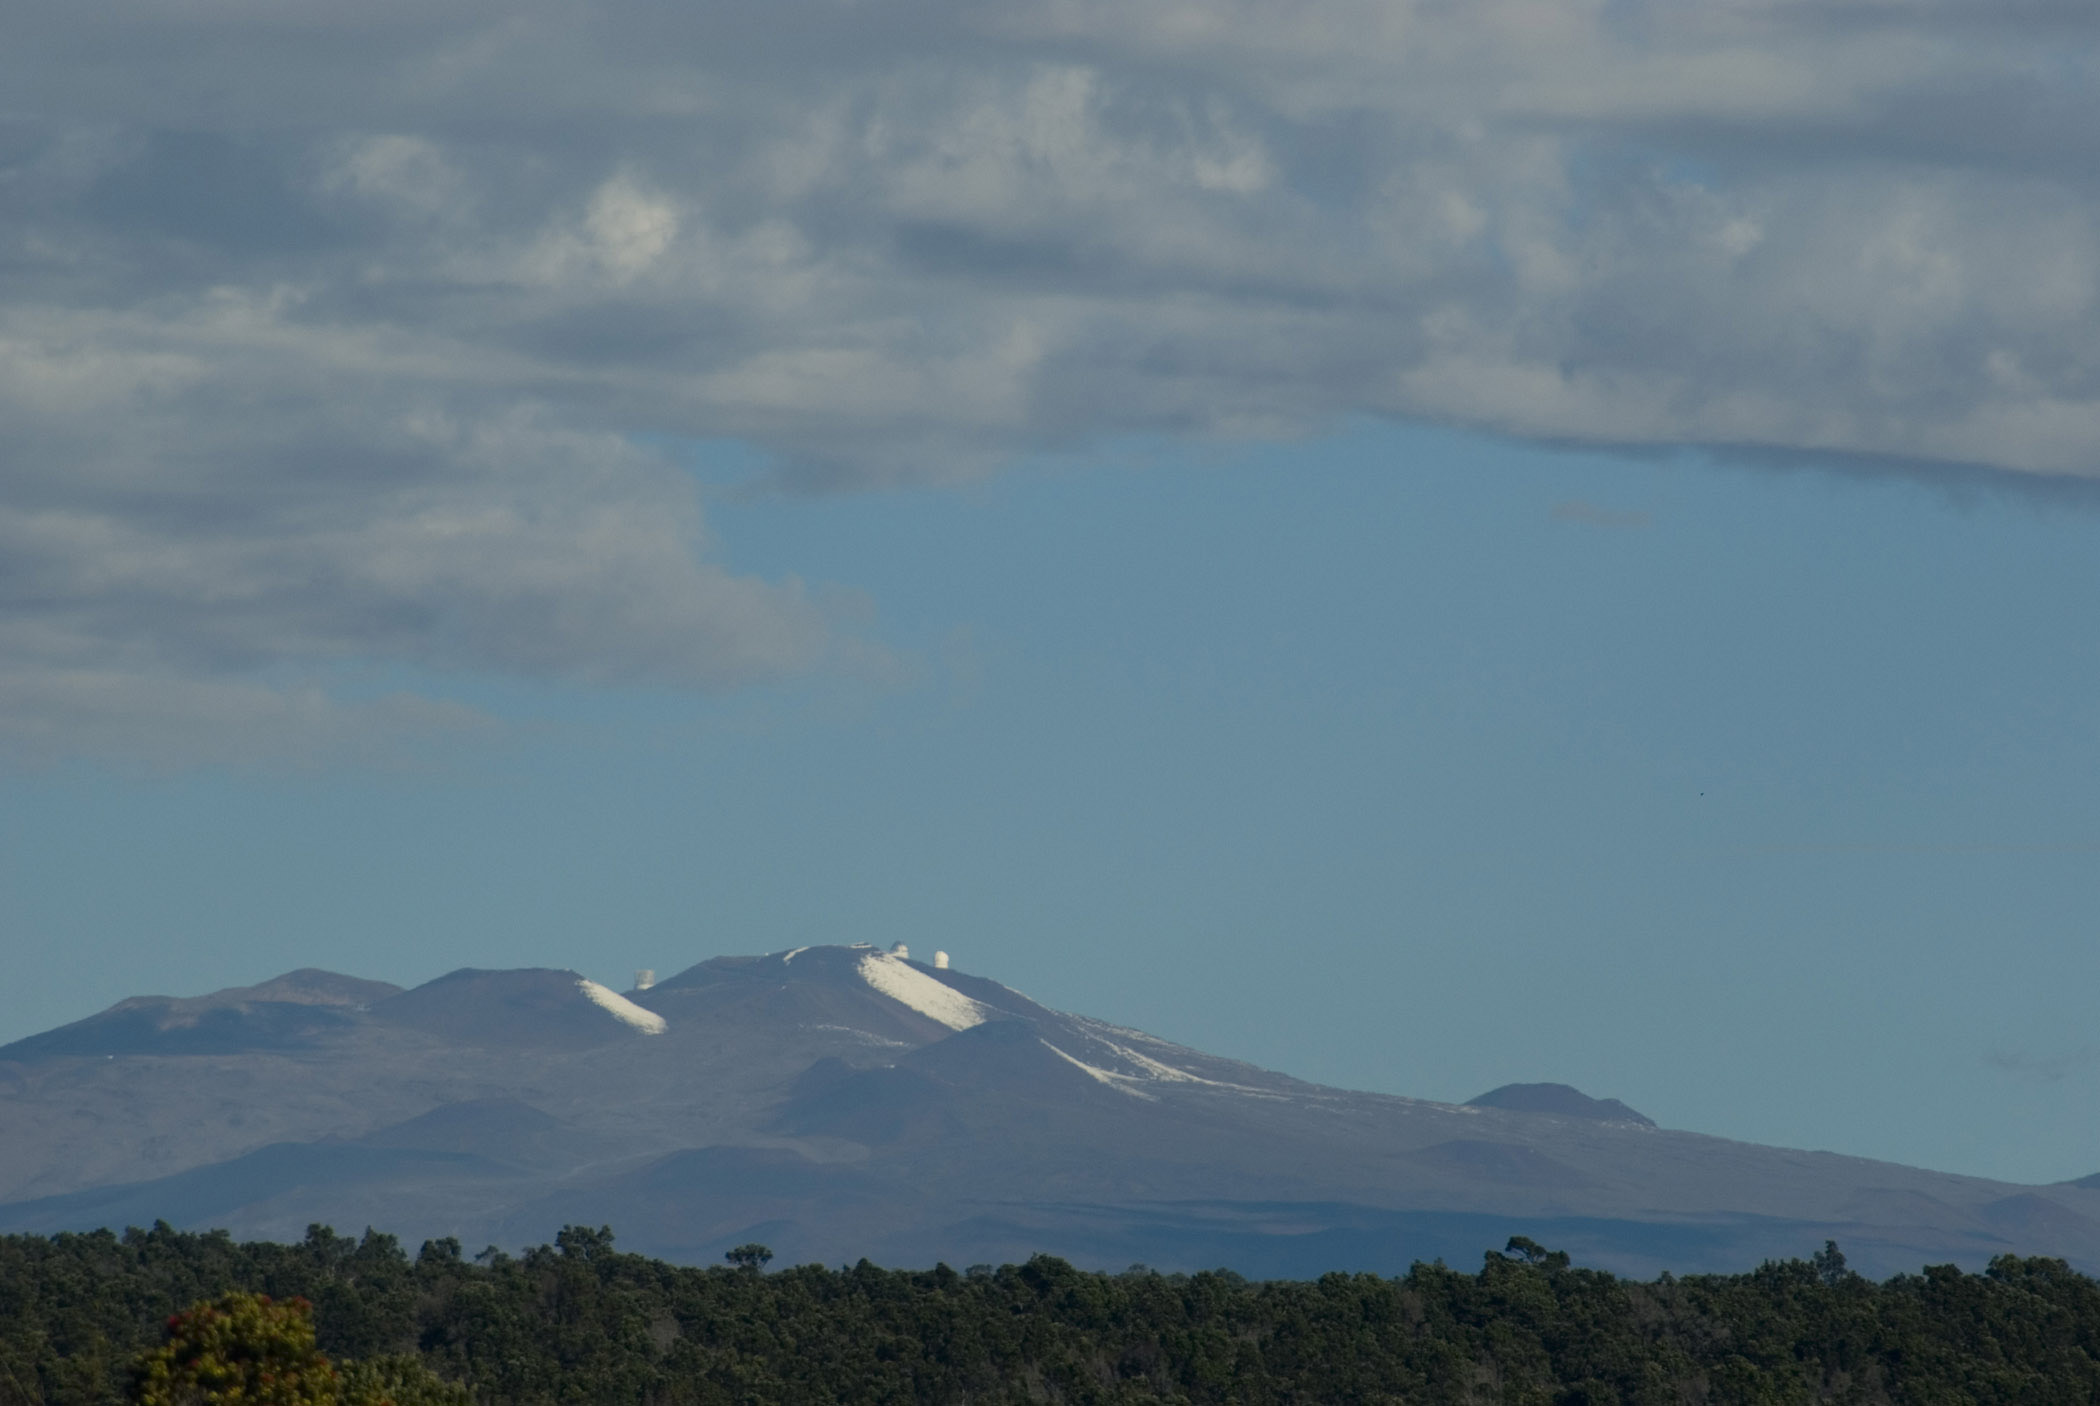 View of Mauna Kea, Hawaii, the highest mountain on which there is an astronomical observatory